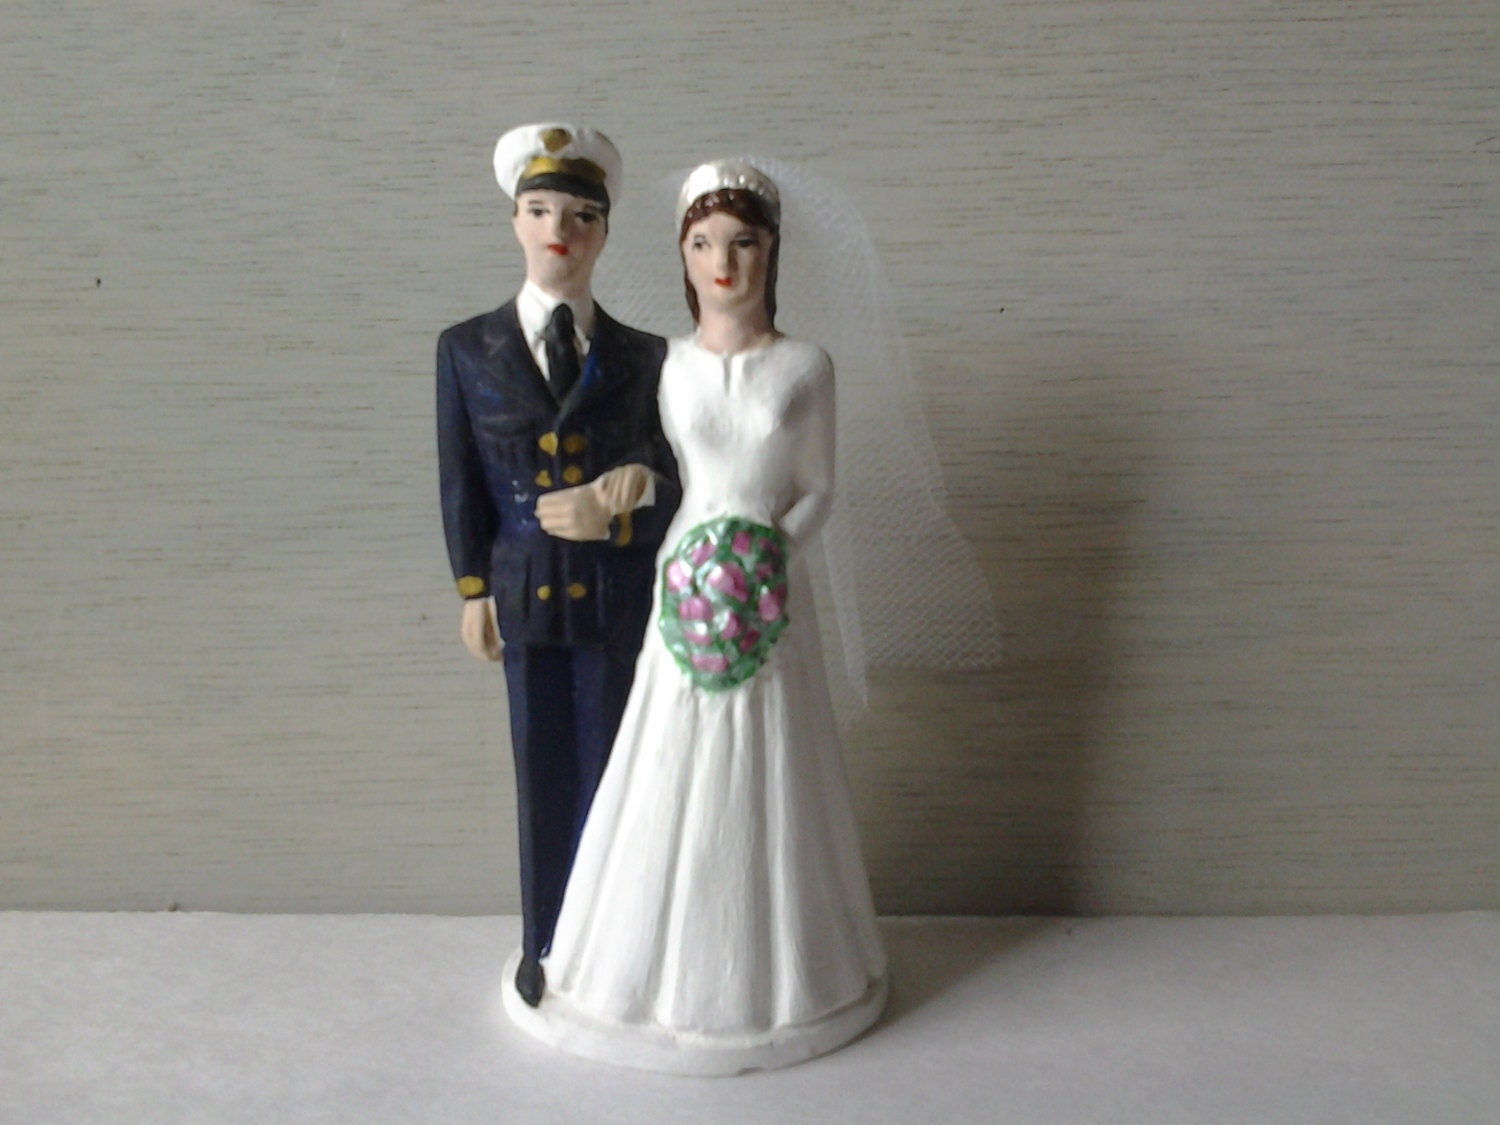 us navy wedding cake toppers vintage wedding cake topper us naval by noneedfornew 21518